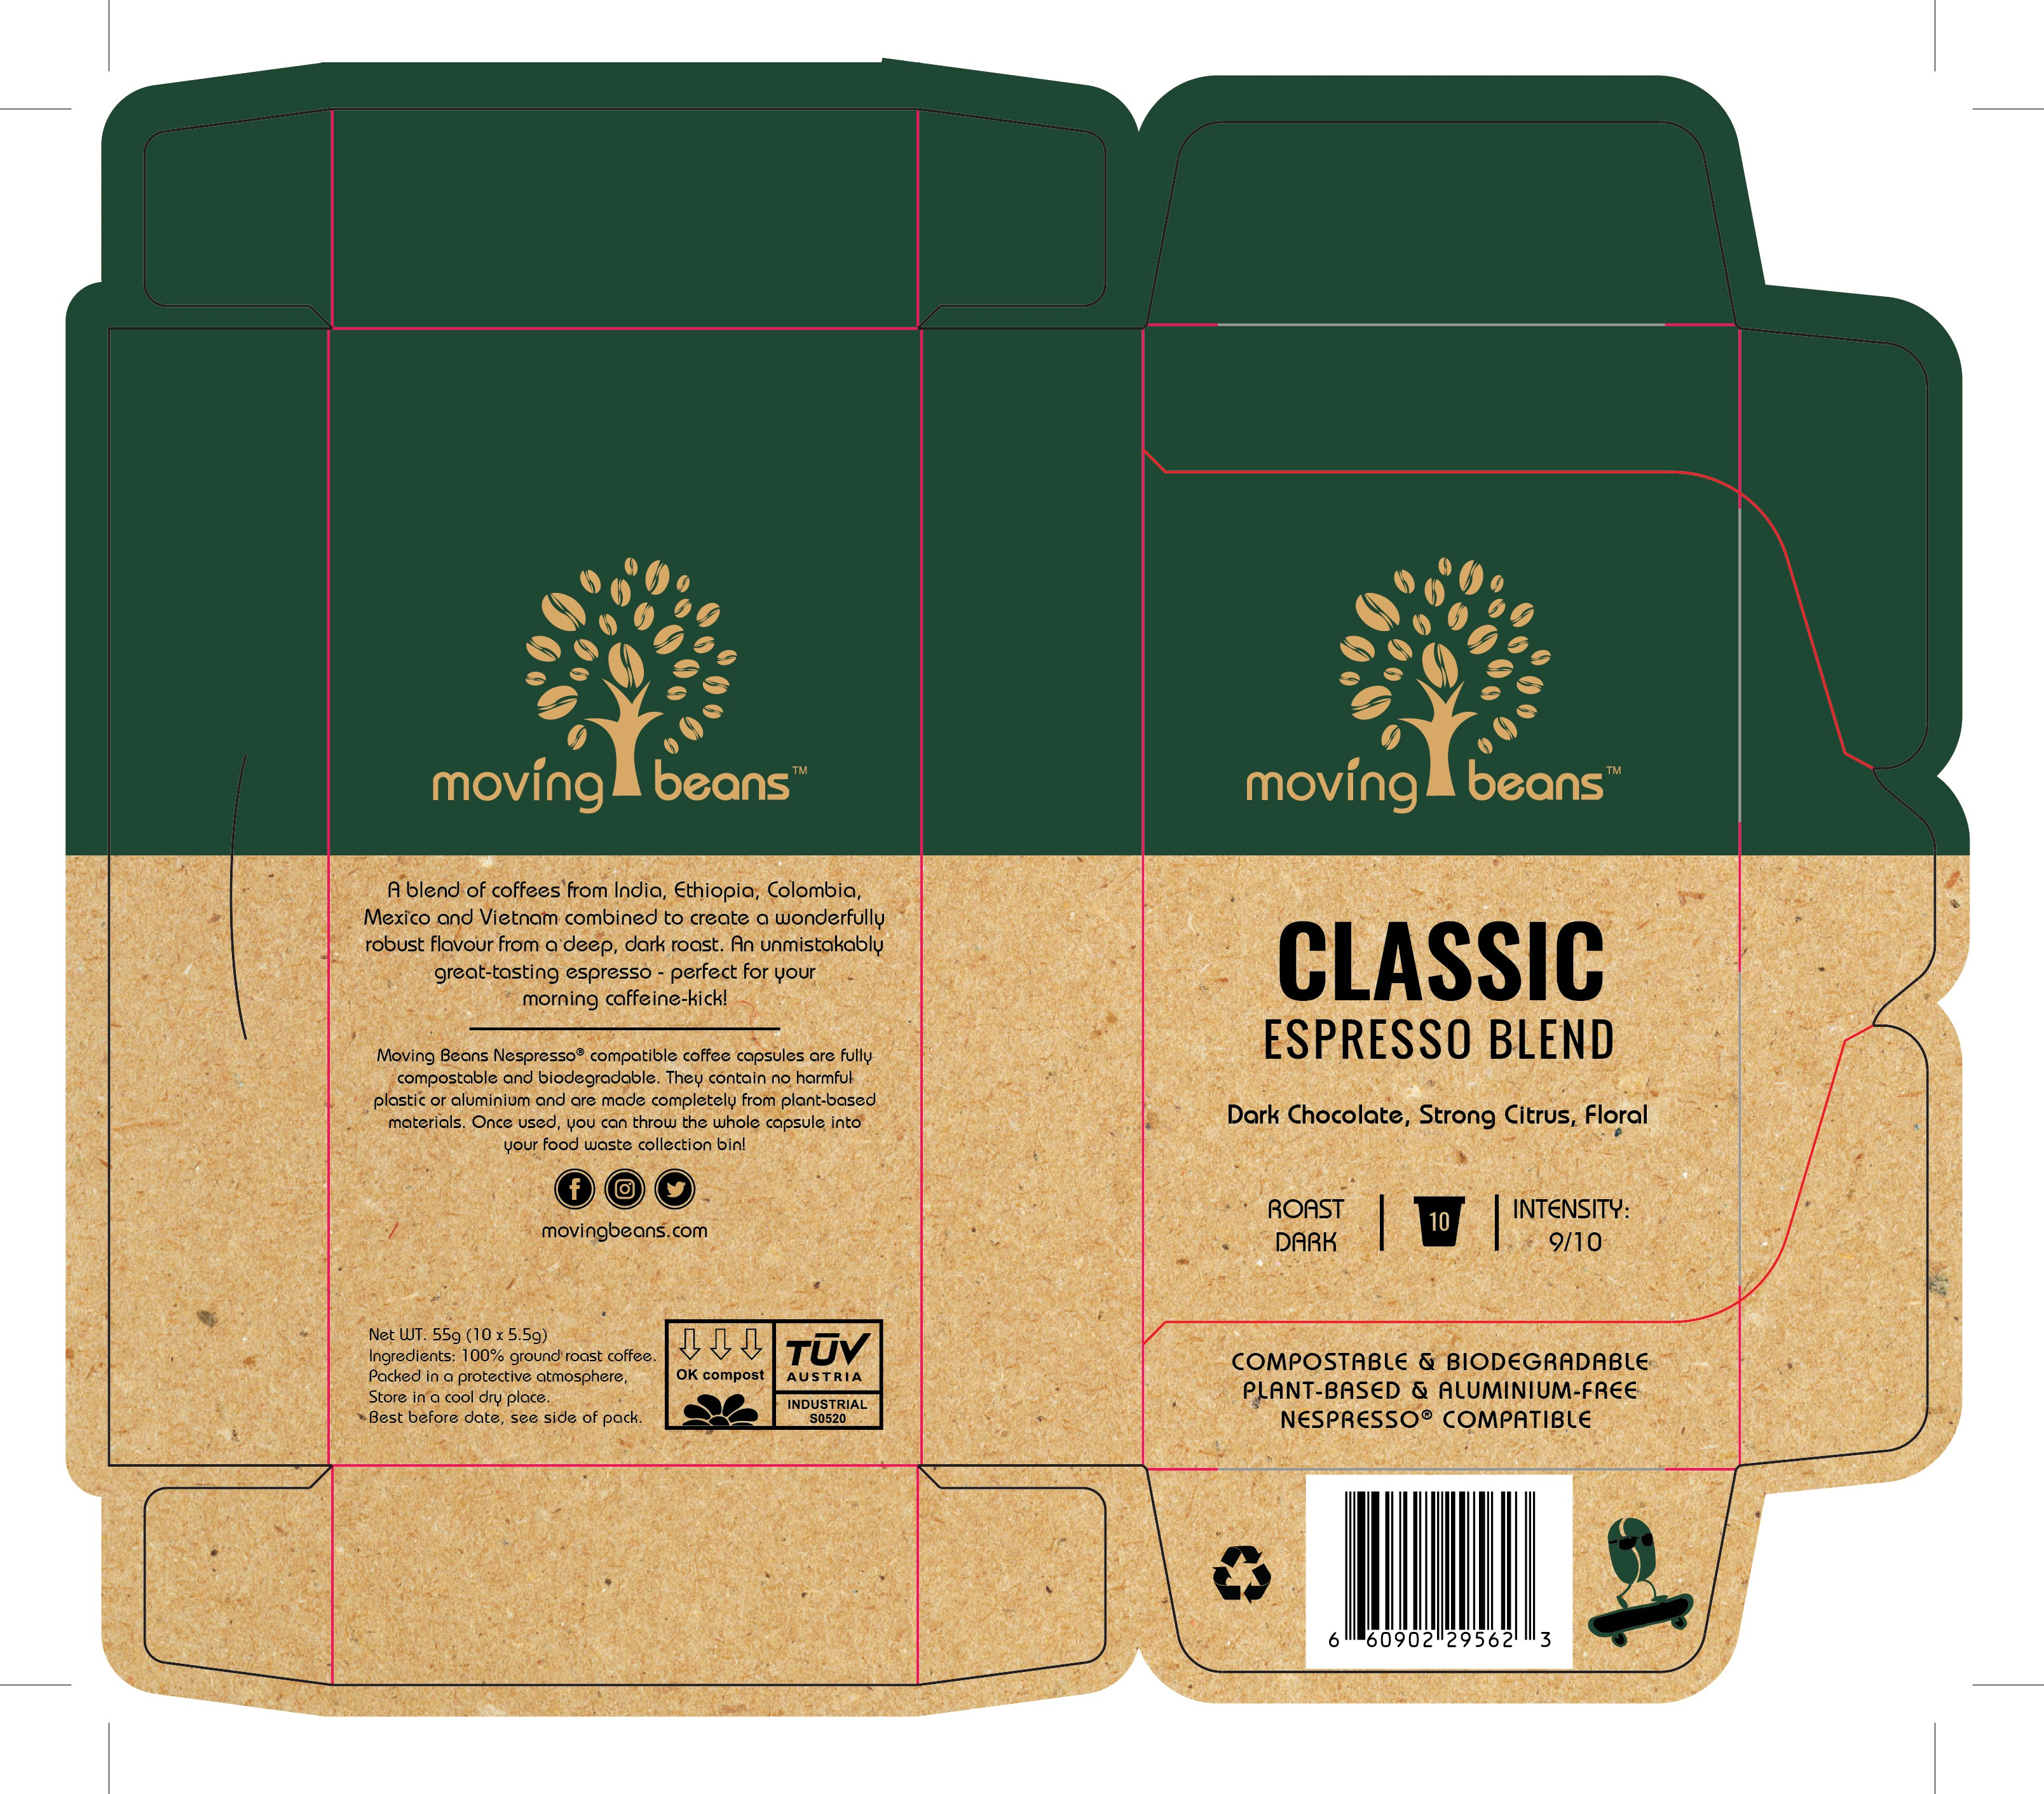 Packaging design for a sustainable, zero-waste coffee pod company